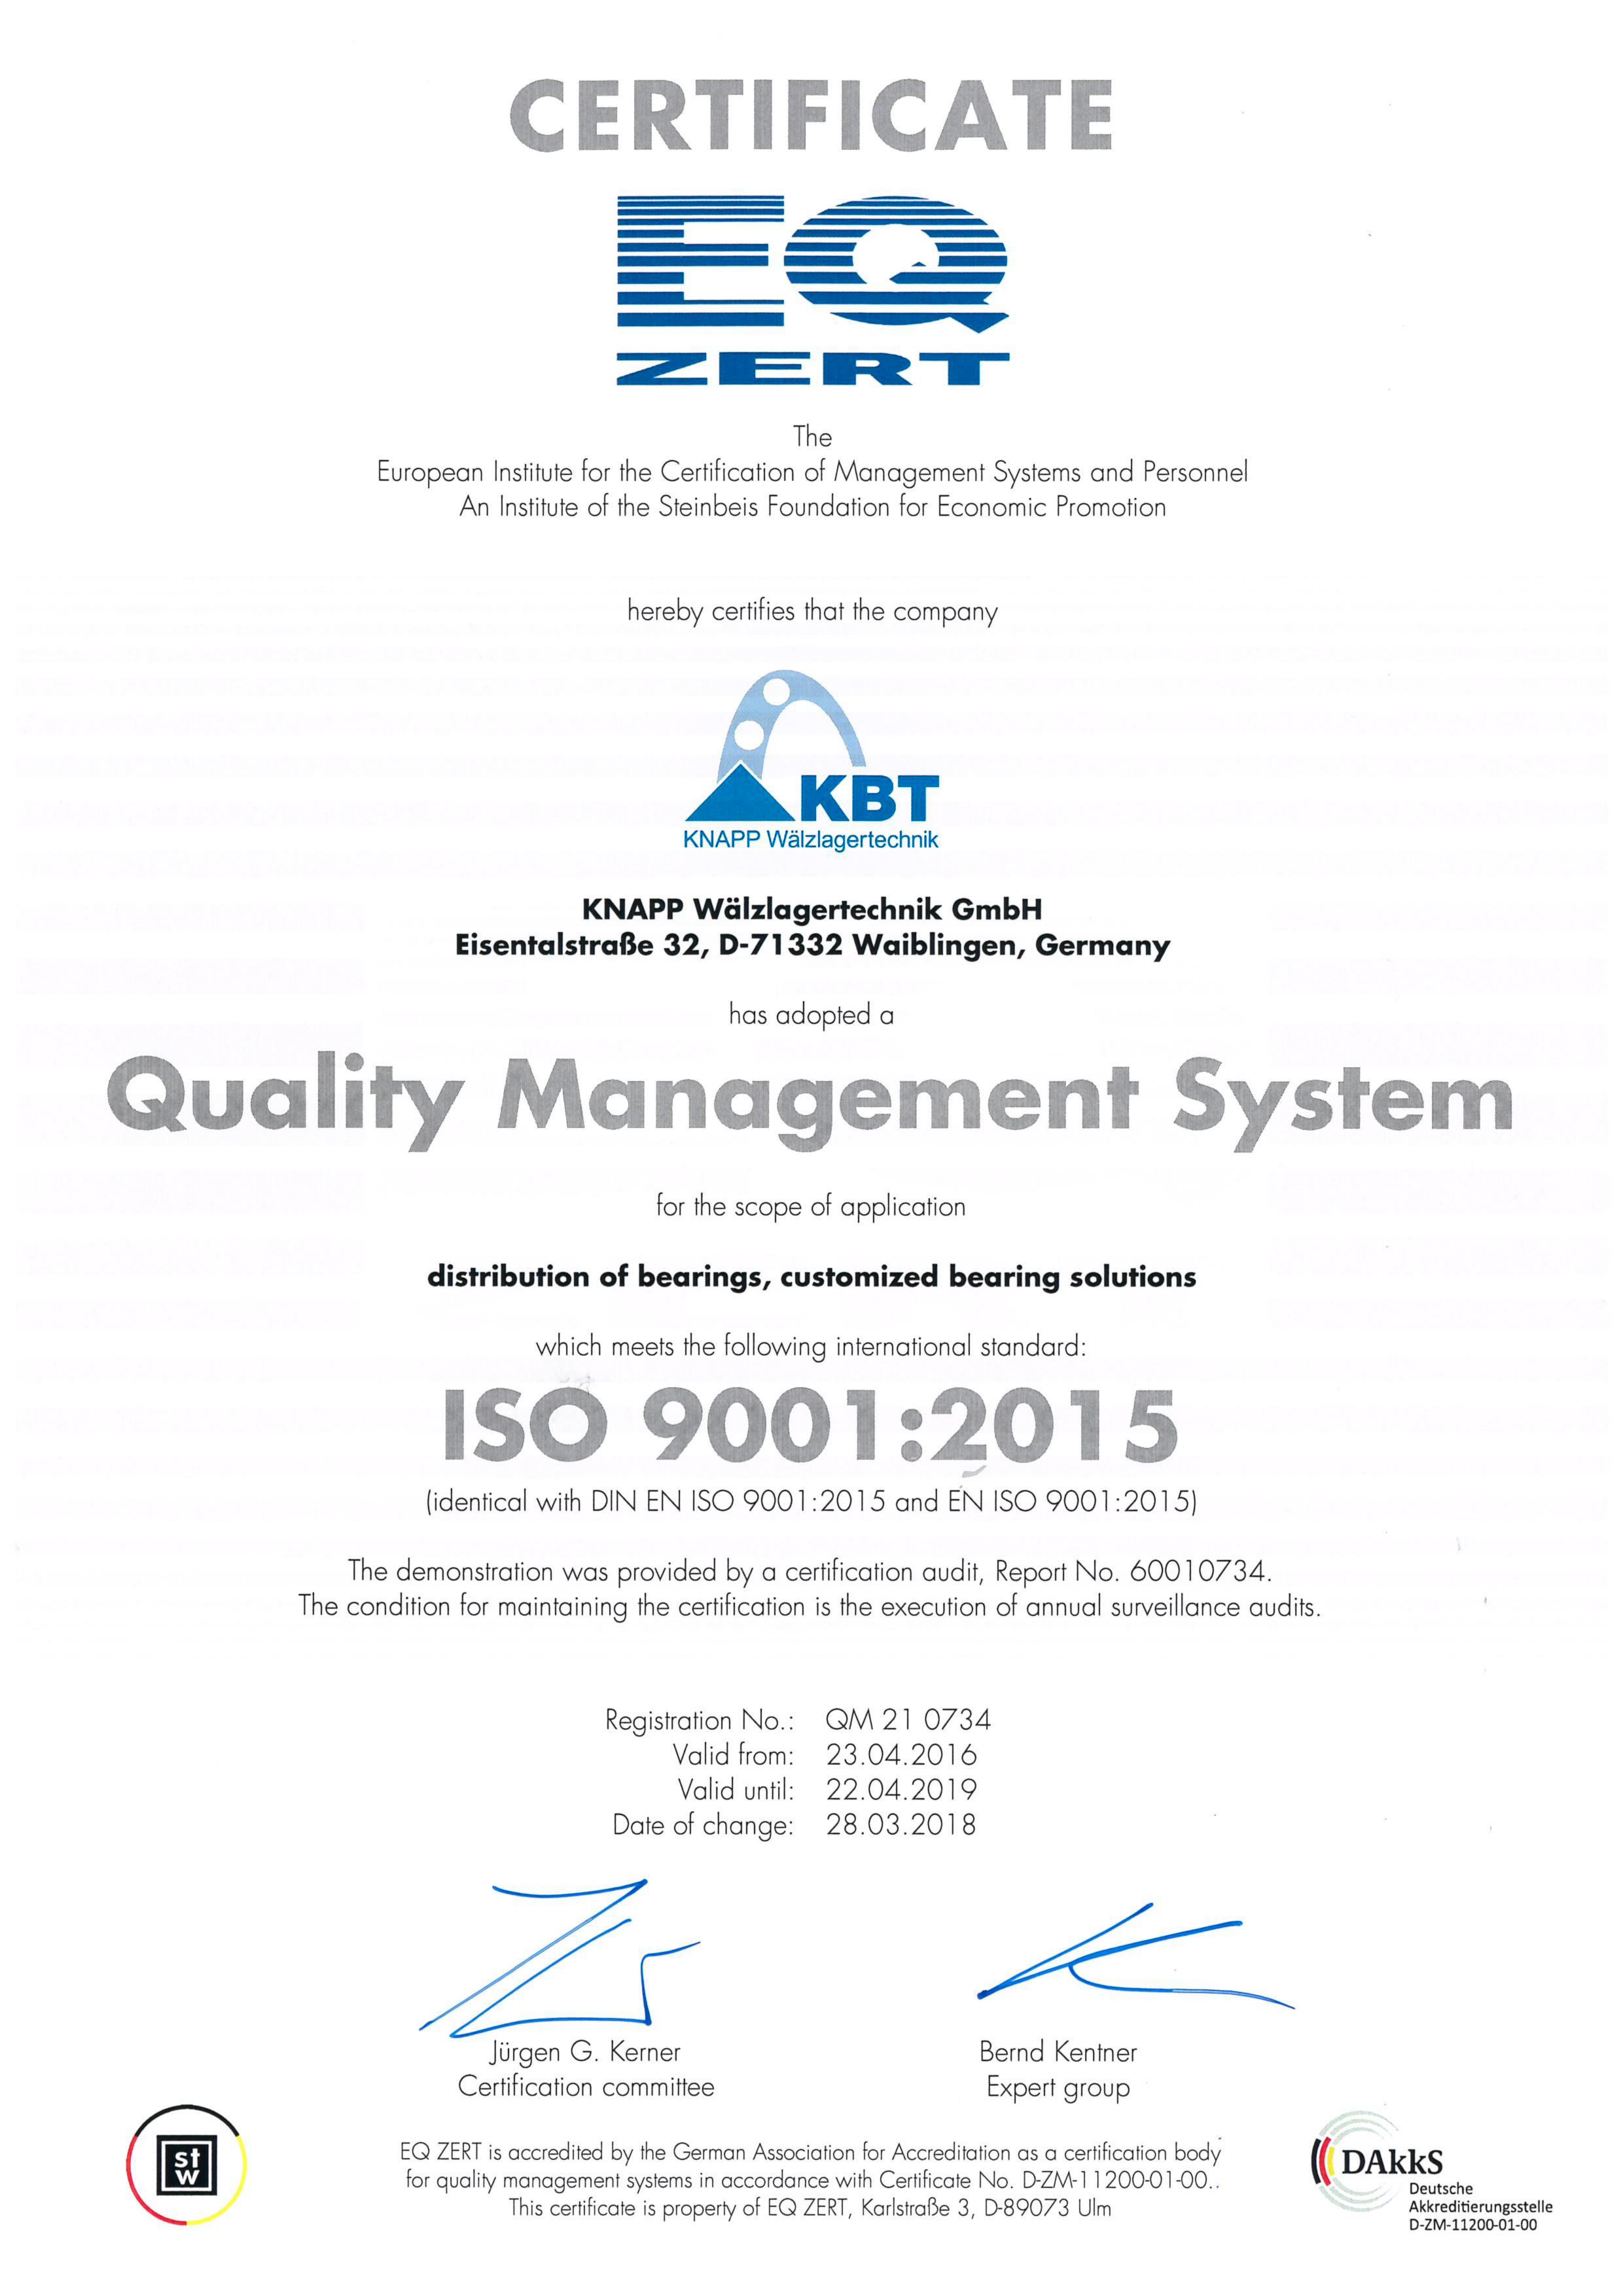 Quality management certification DIN ISO 9001:2015